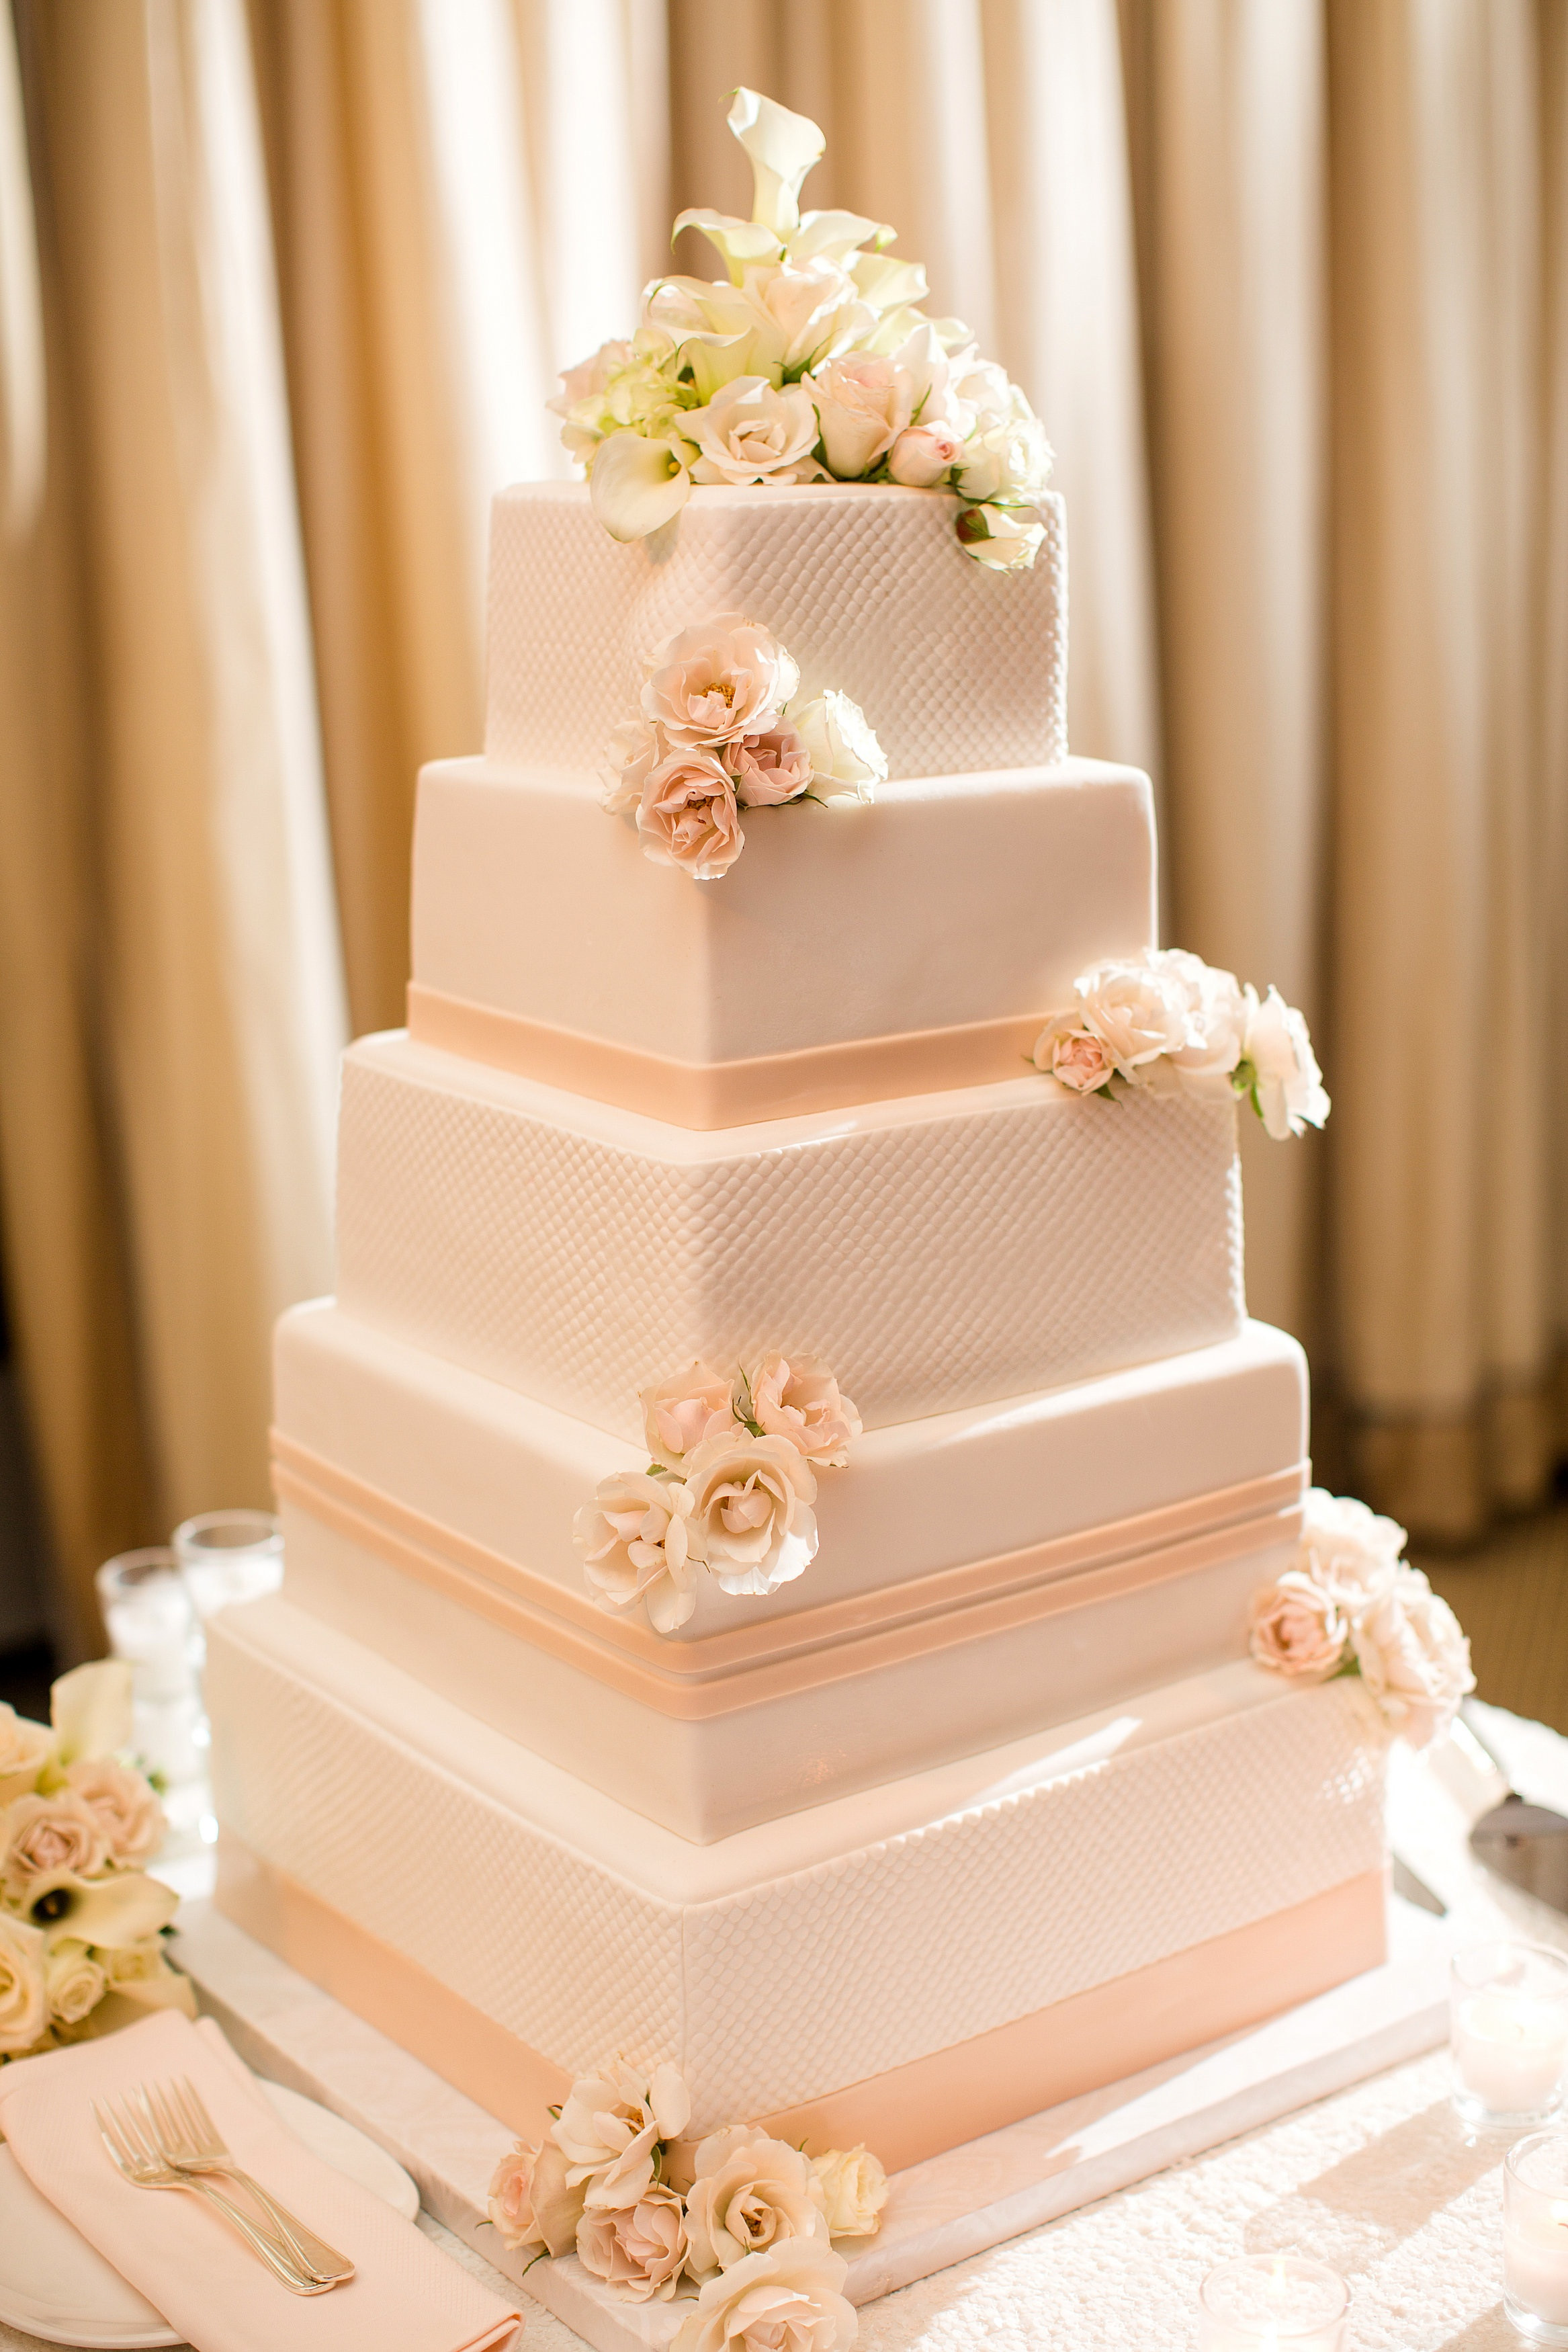 Vanilla Wedding Cakes  Vanilla Bake Shop Wedding Cakes